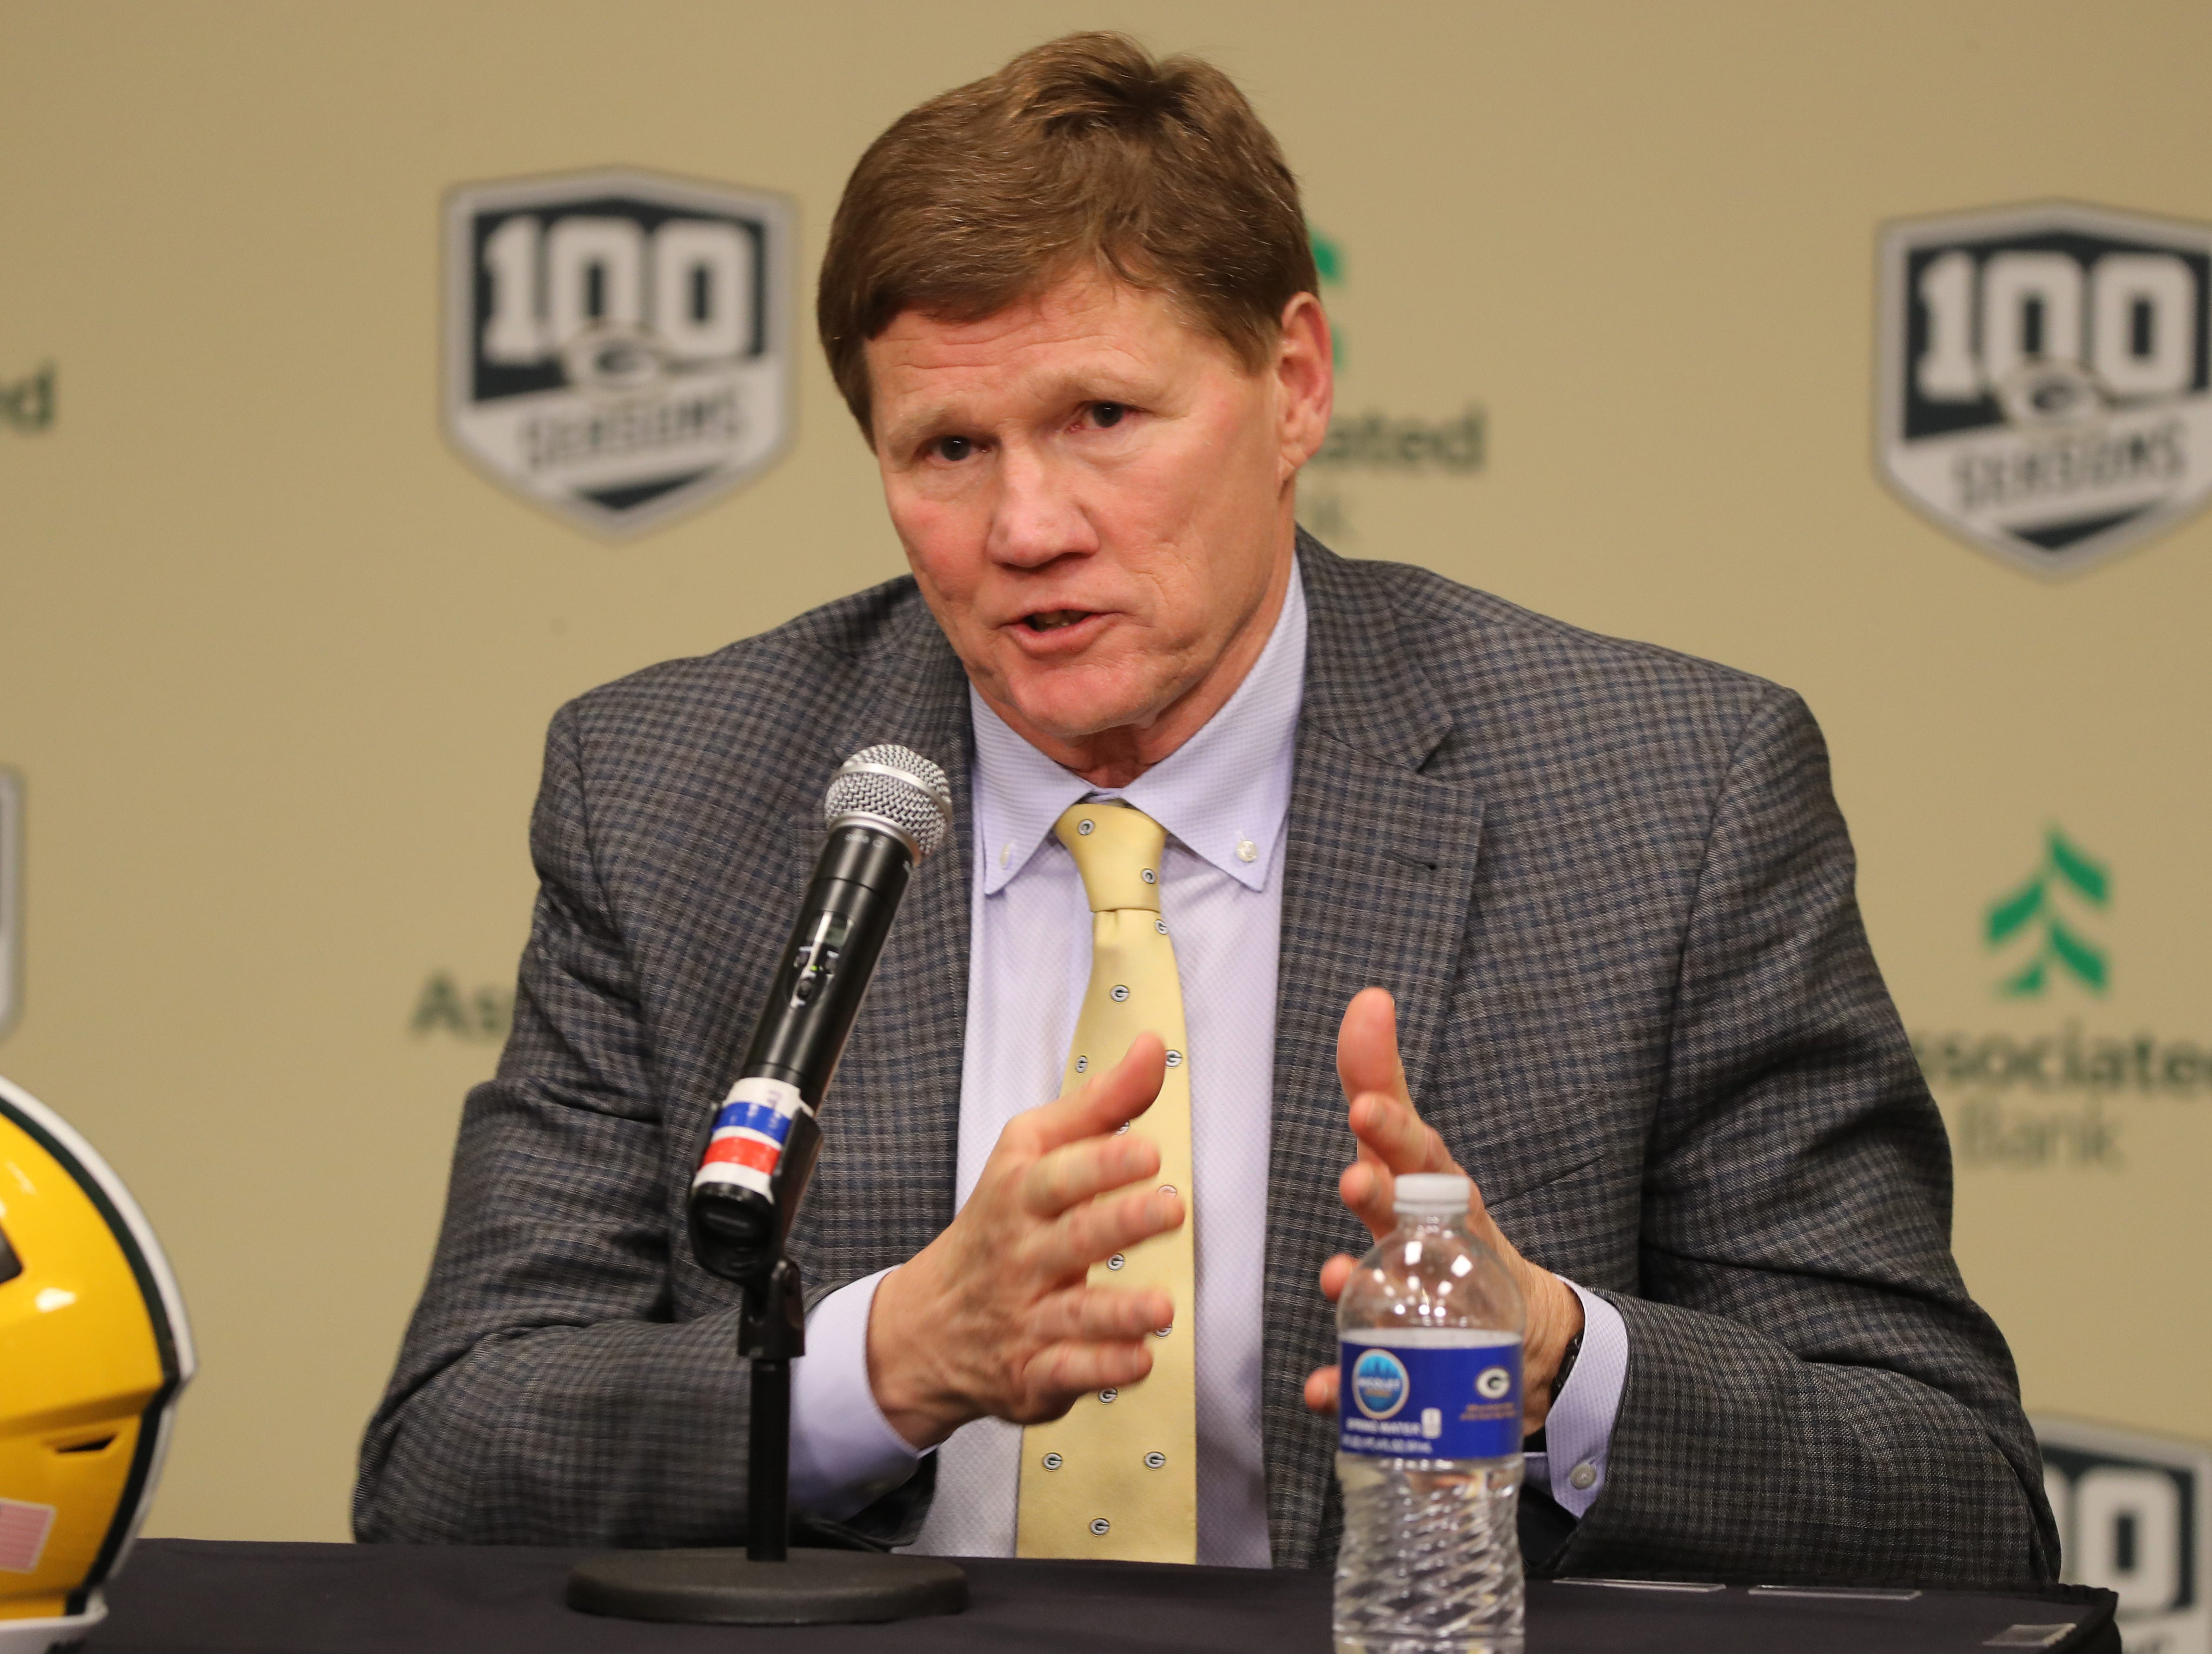 Green Bay Packers president Mark Murphy talks about the head coach interview experience as new head coach Matt LaFleur is introduced during a press conference in the Lambeau Field media auditorium Wednesday, January 9, 2019 in Green Bay, Wis.